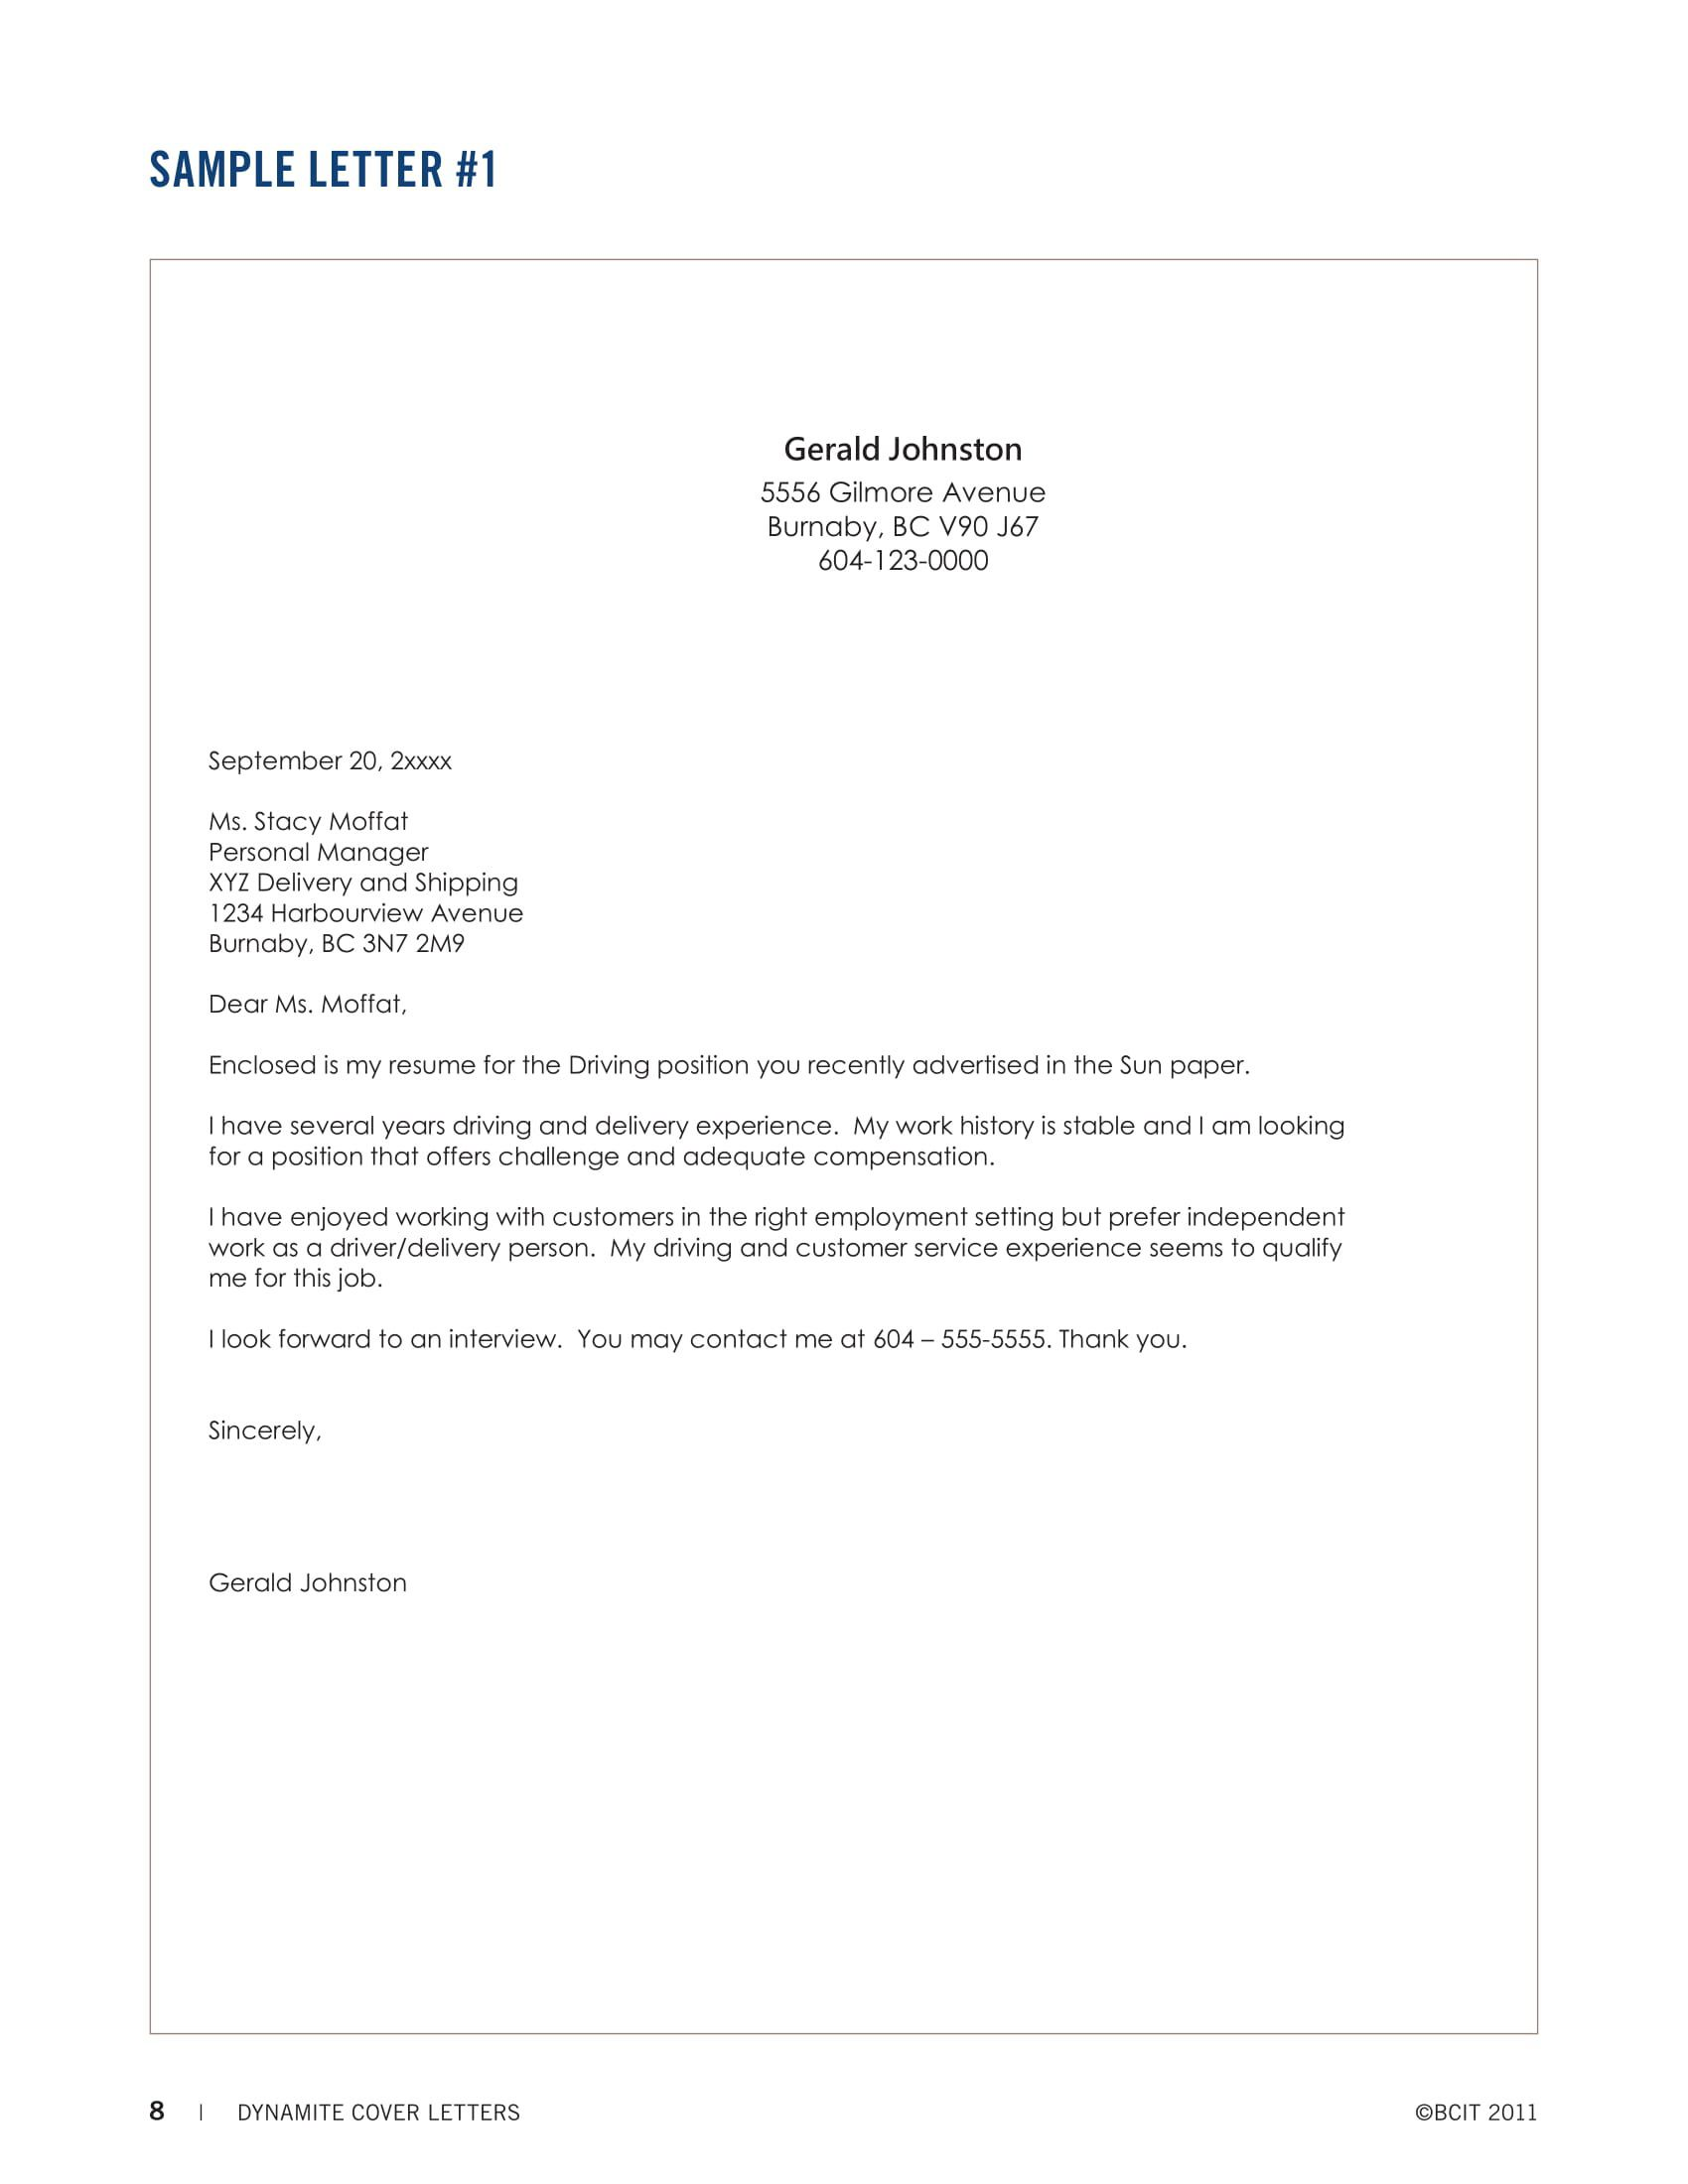 009 Unforgettable Download Resume Cover Letter Sample Free High Definition Full